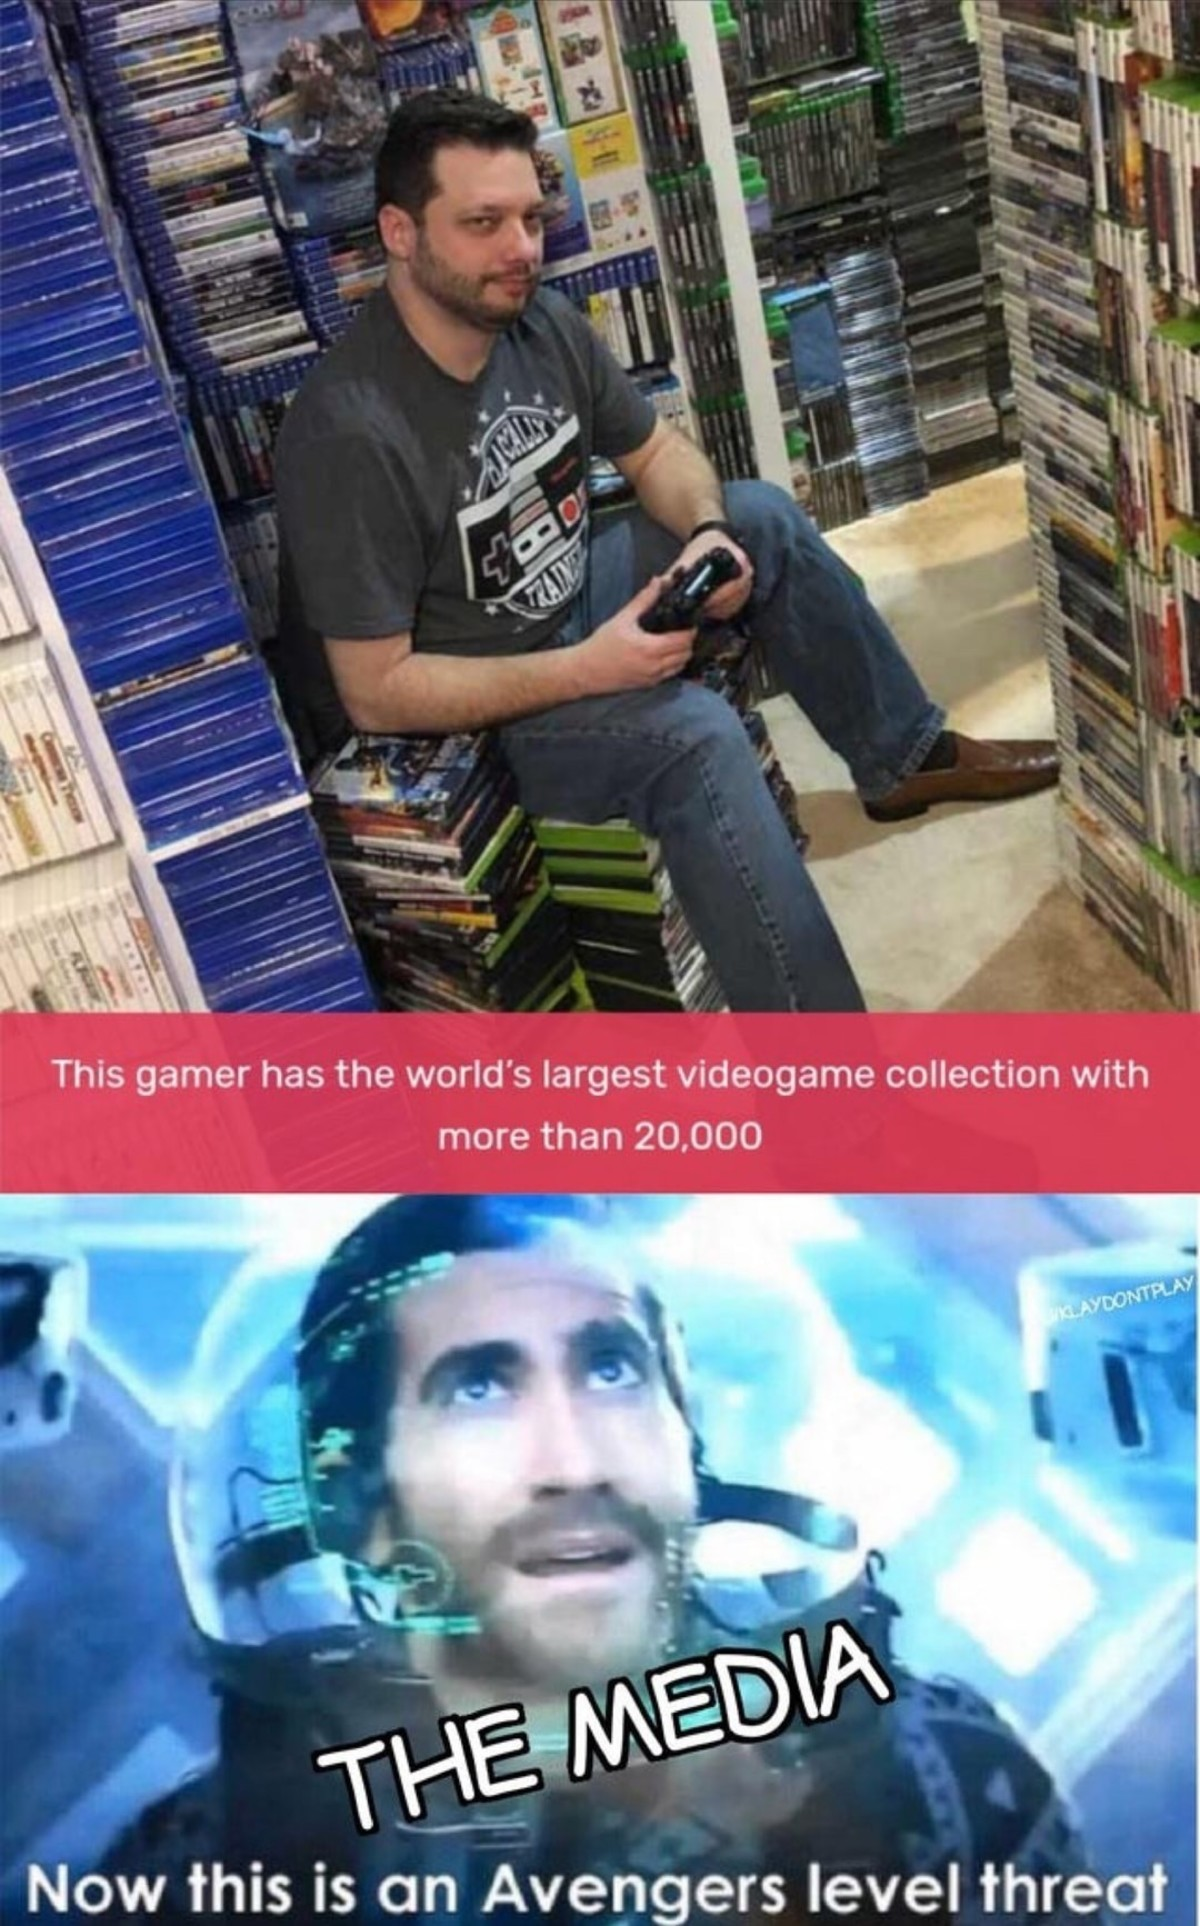 Pro gamer. .. 20,000 games is the largest collection? We talking physical? Because if we include digital I'm pretty damn sure I've surpassed that number.